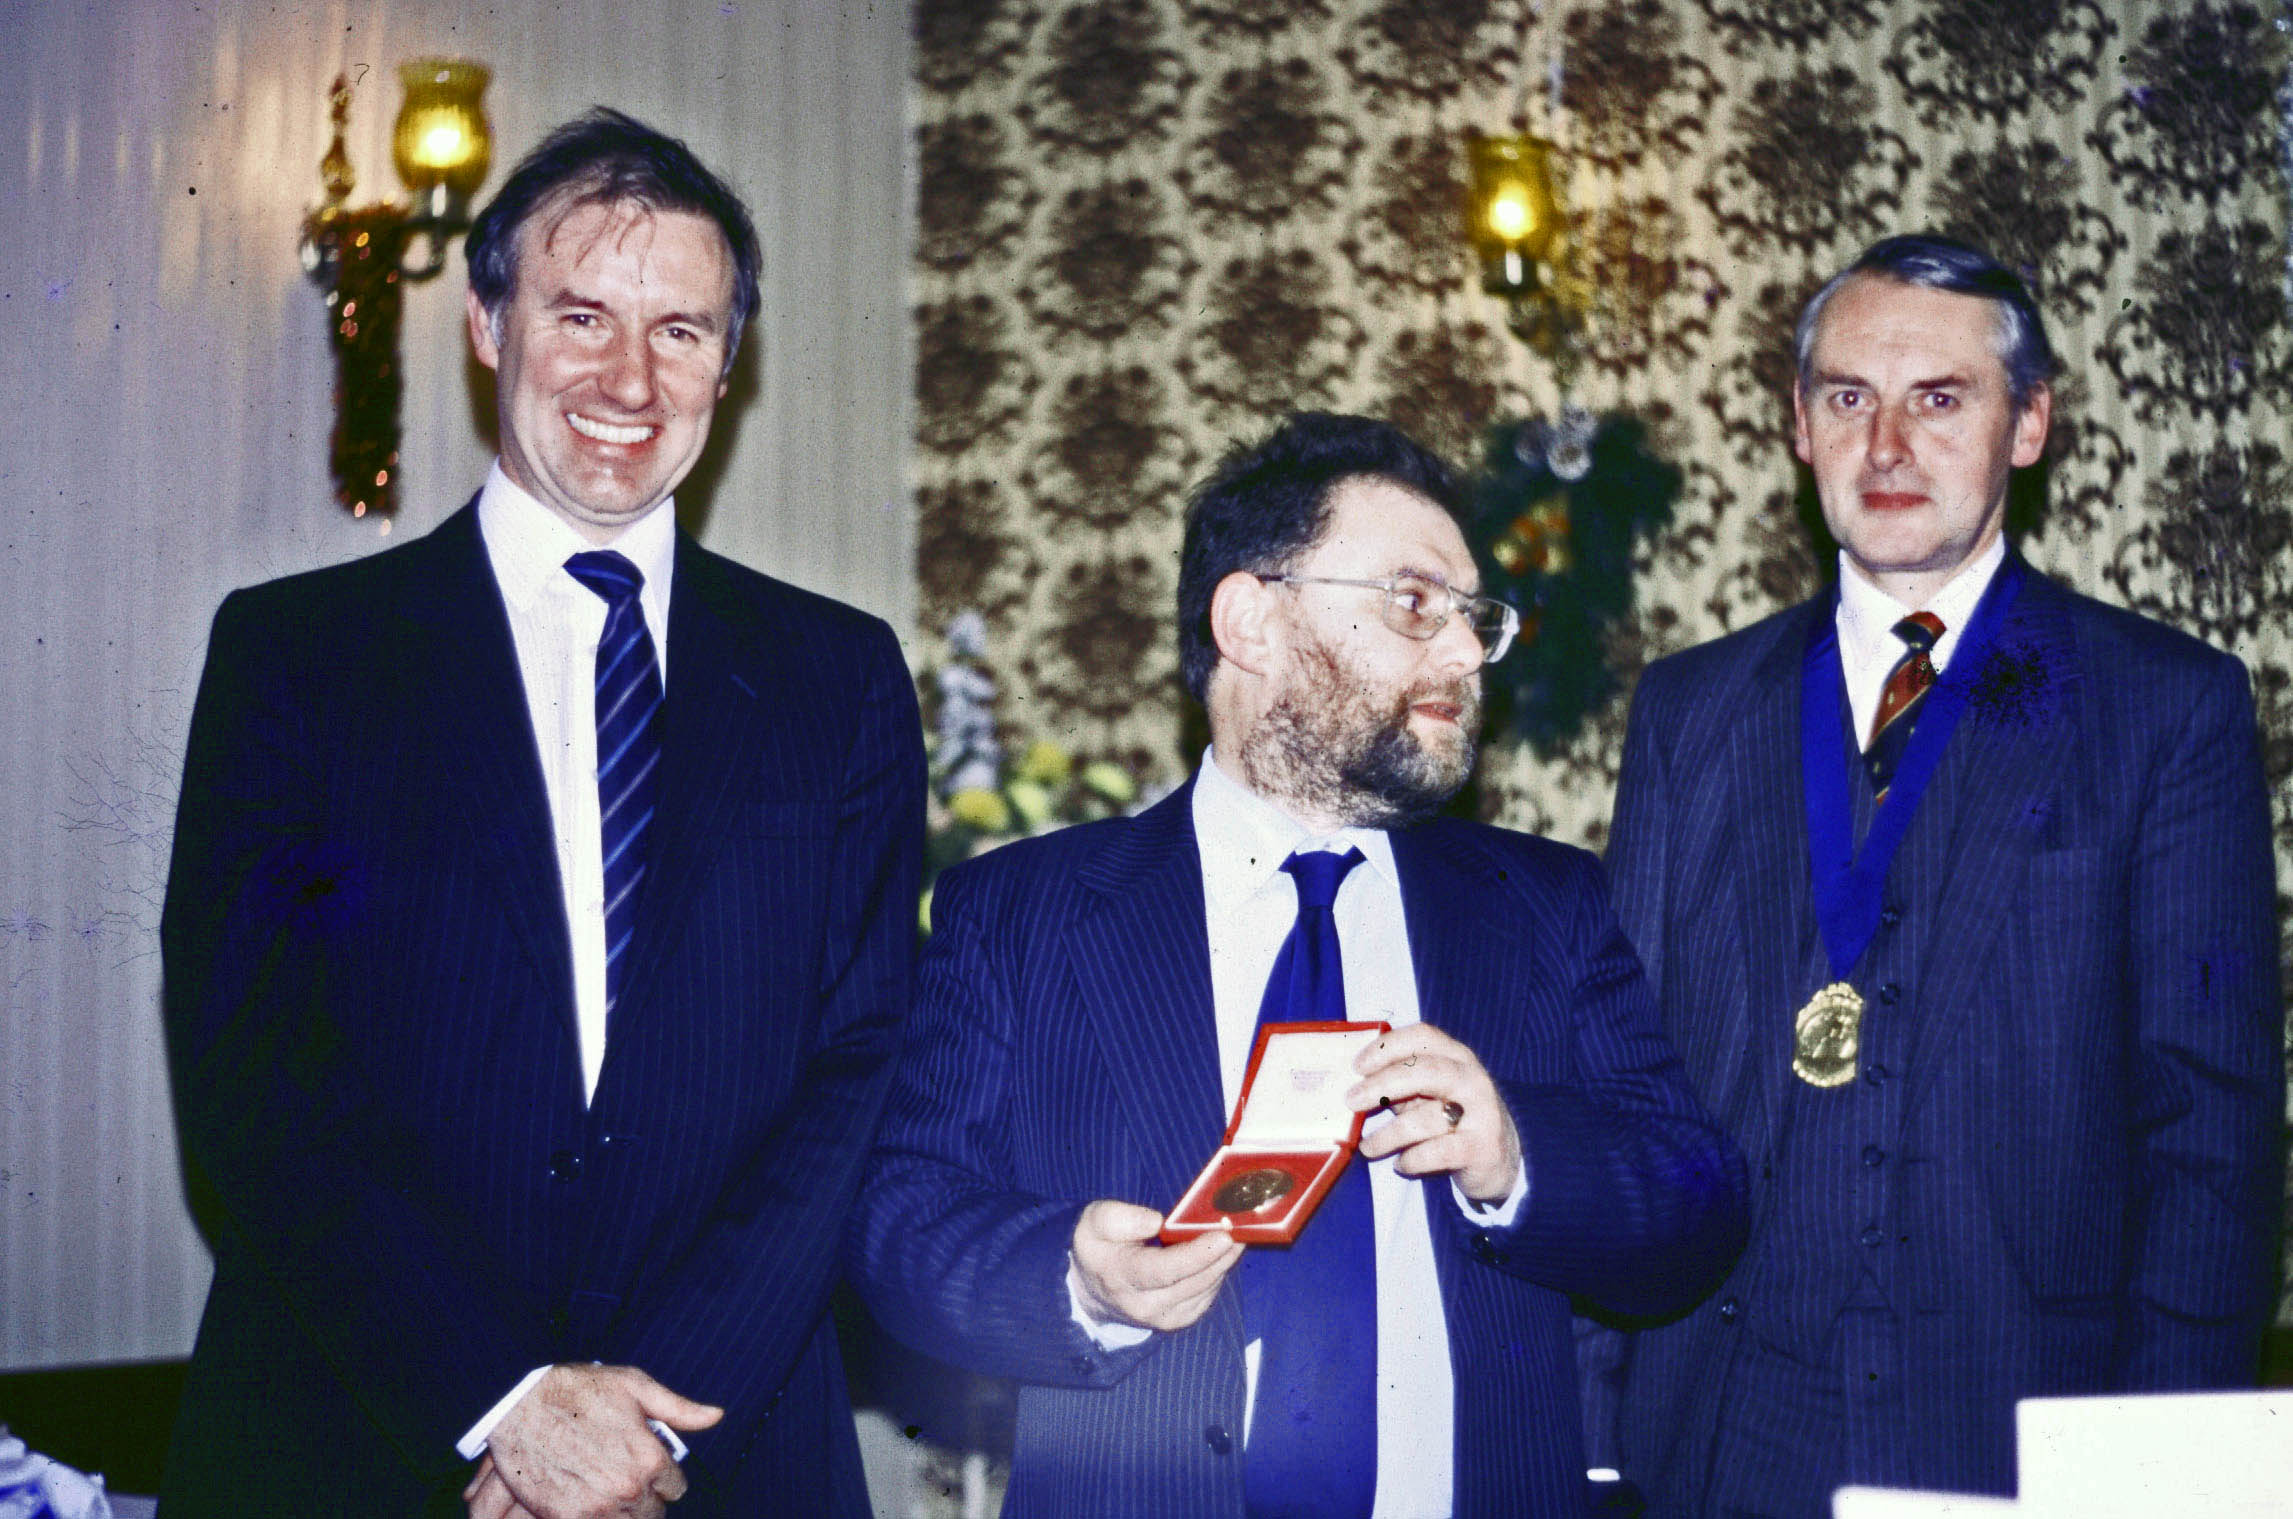 Harry Ford receives the Lorimer Medal while Dave is seen wearing his award. With Prof. Malcolm Longer